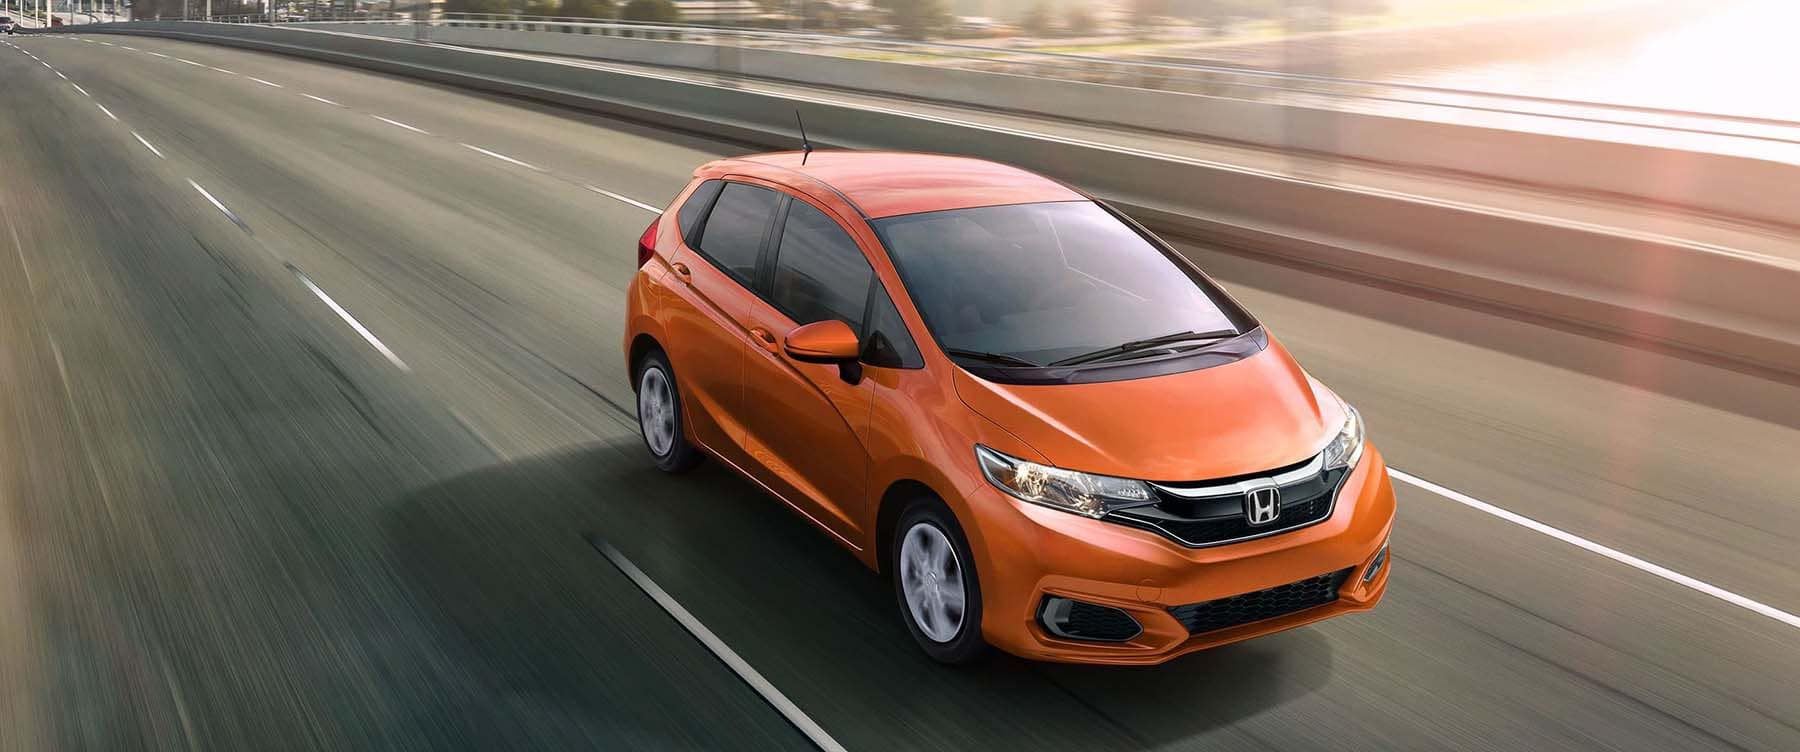 2019 Honda Fit driving on the highway